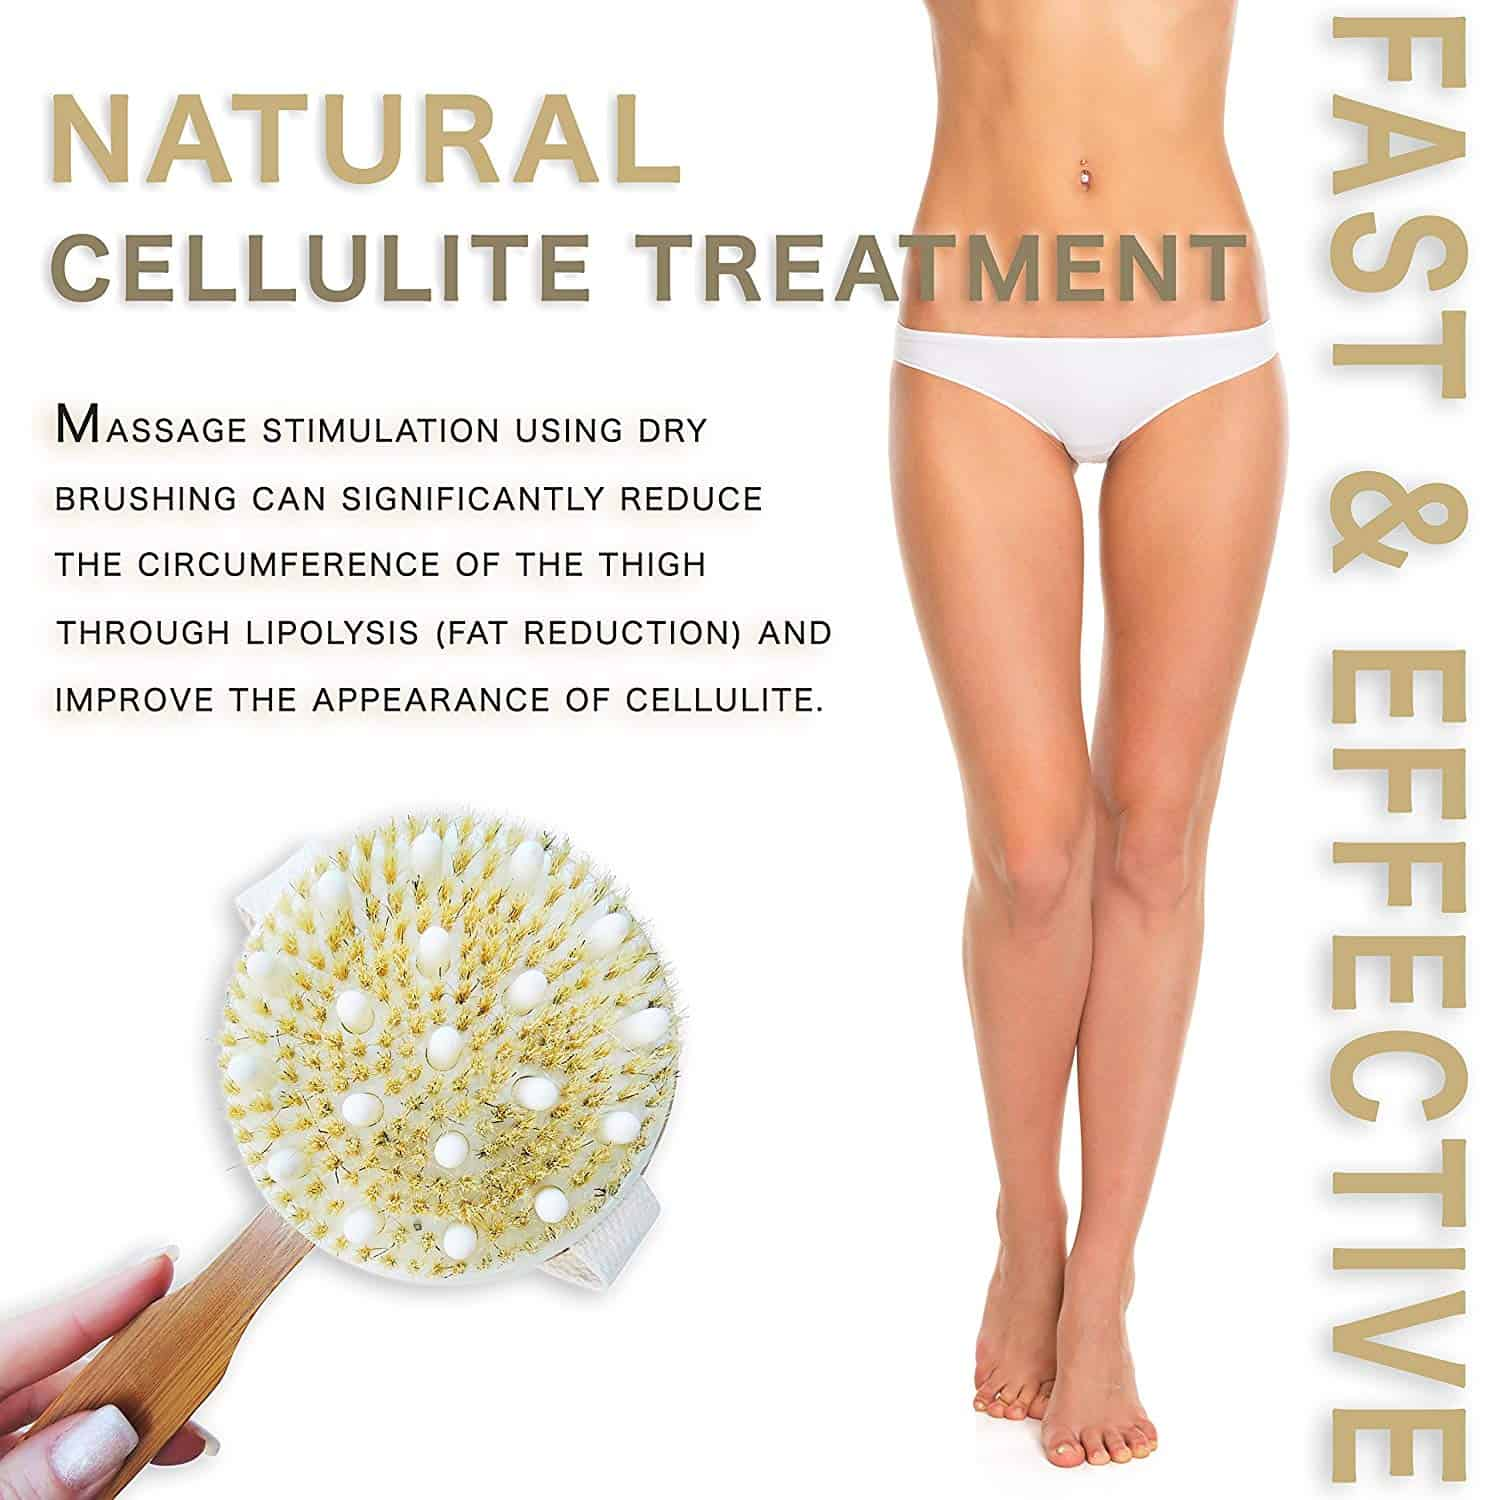 Getting-Rid-Of-Cellulite-1.jpg